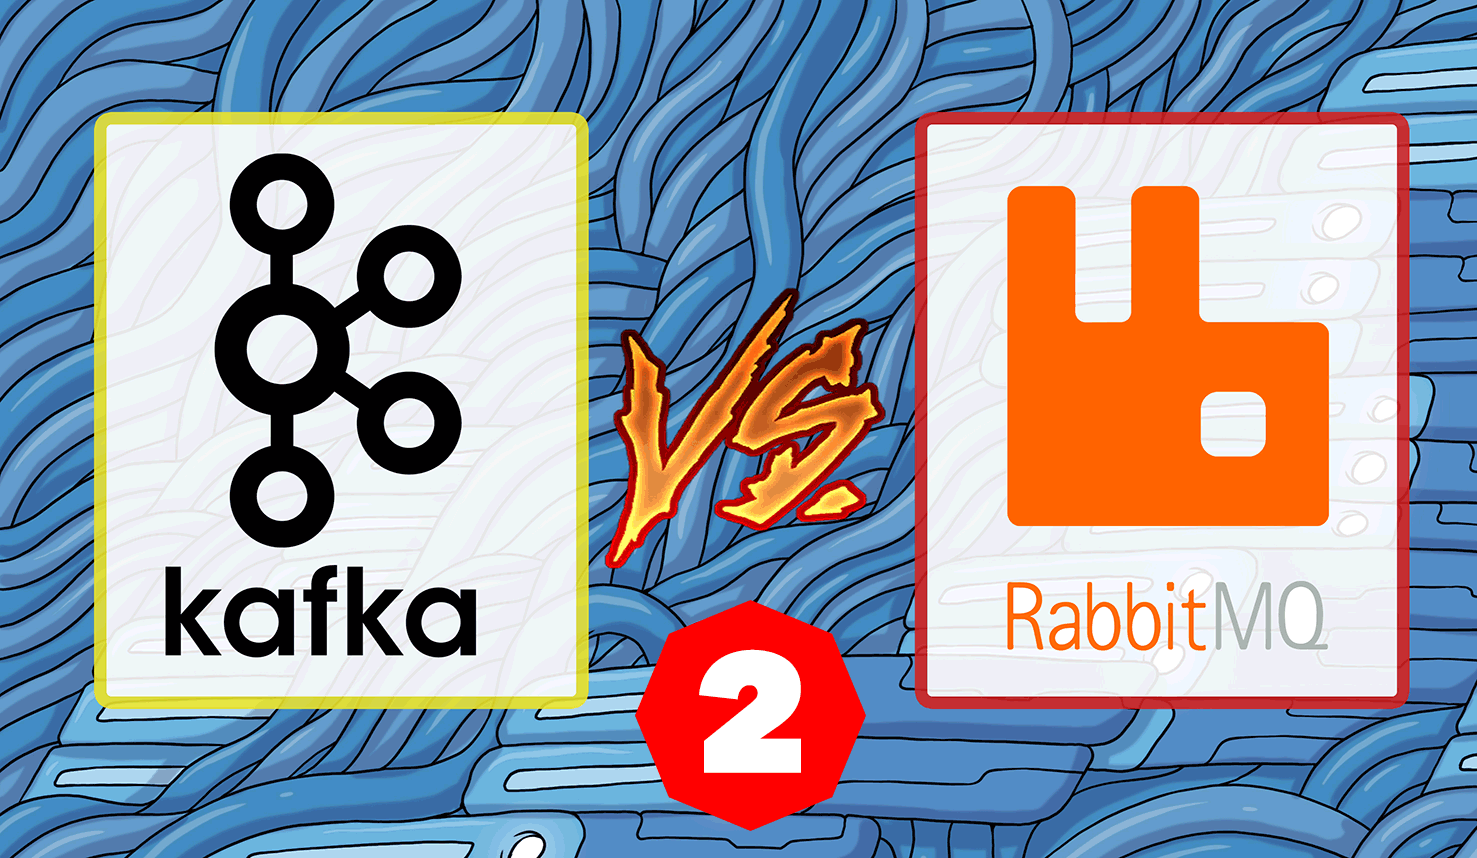 RabbitMQ versus Kafka: application of Kafka in event-oriented applications